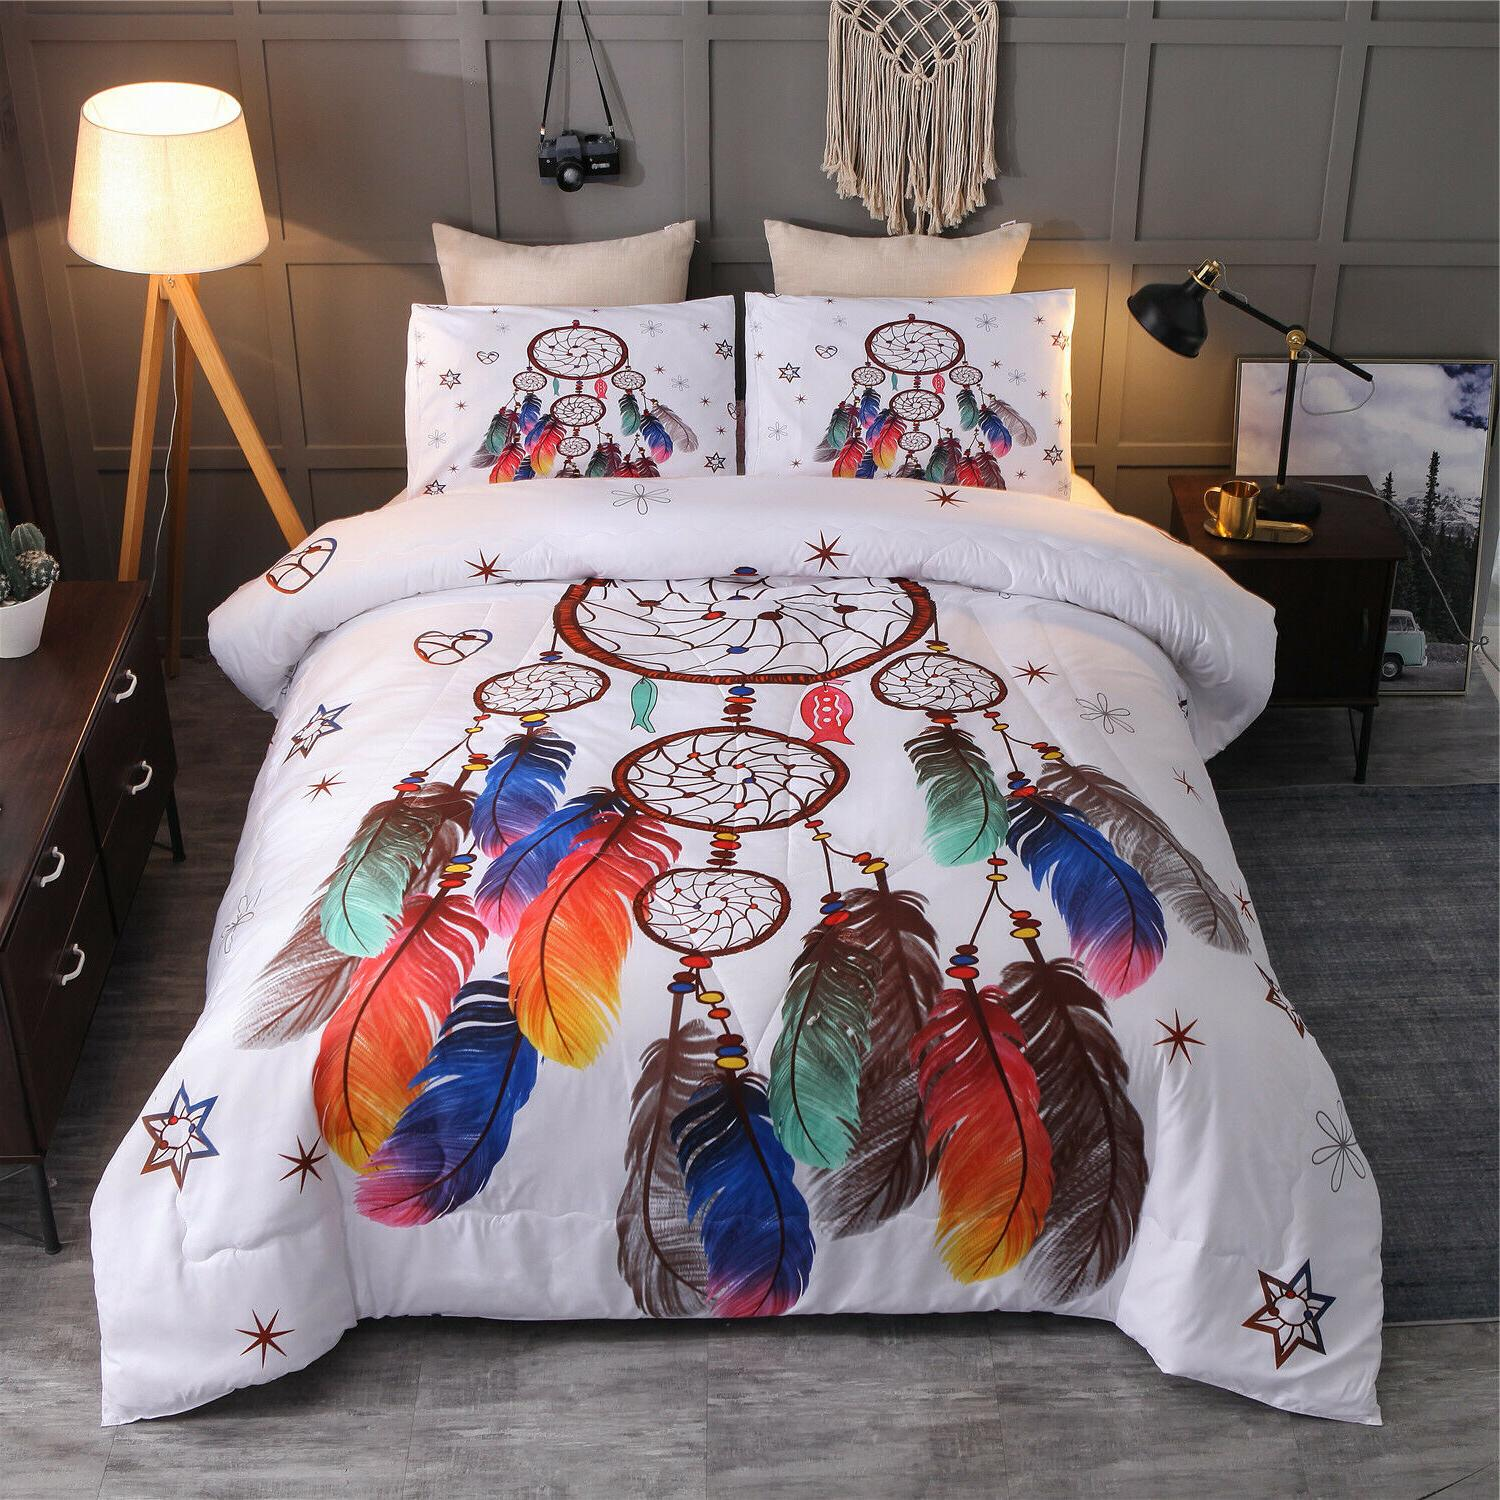 Bohemian Dream Catcher Comforter Set Boho Pillowcases Queen Bedding